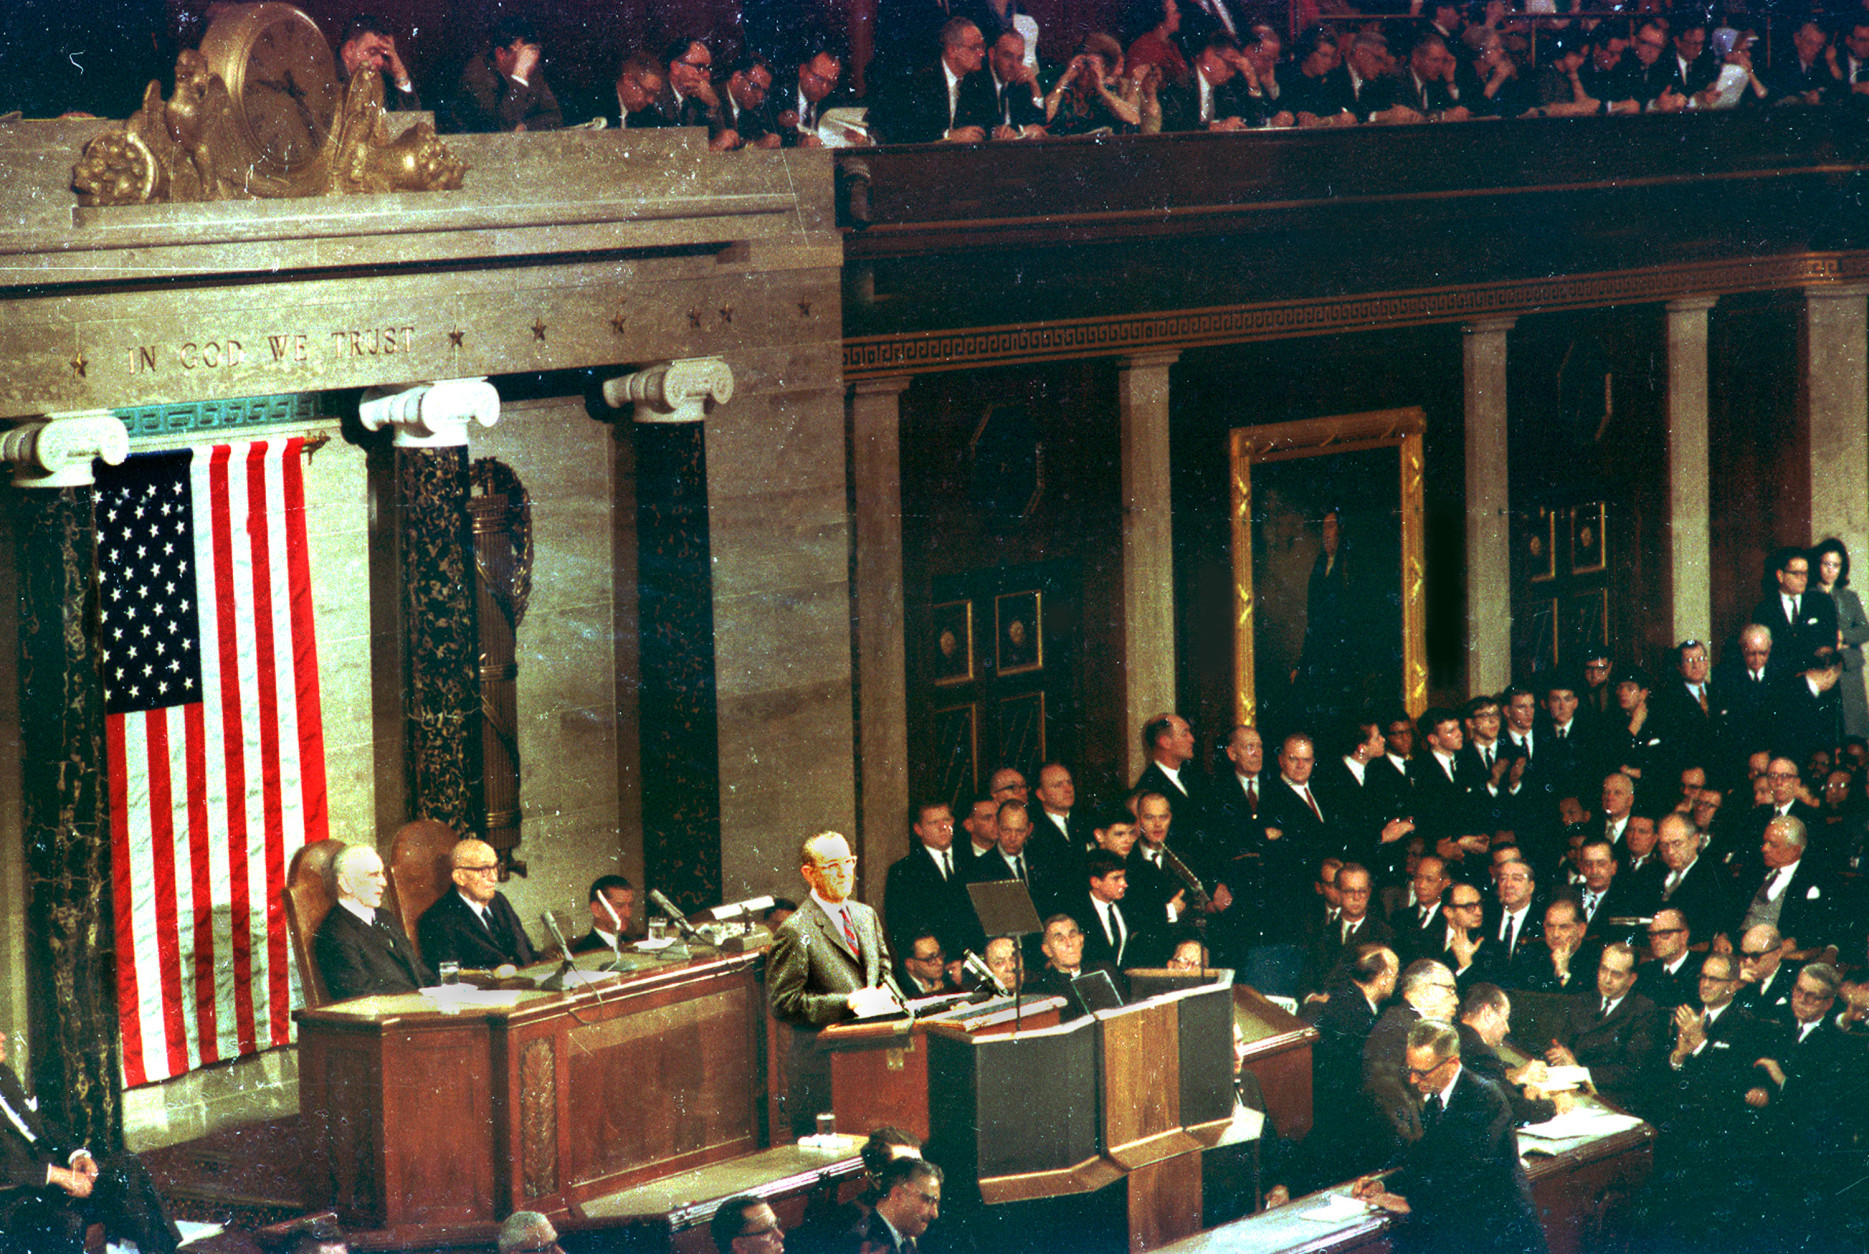 U.S. President Lyndon B. Johnson delivers the State of the Union address before the joint session of Congress in the House of Representatives in Washington D.C. on Jan. 12, 1966.  Seated behind the President are house speaker John McCormack, seated left, and Arizona Senator Carl Hayden (Dem).  (AP Photo)